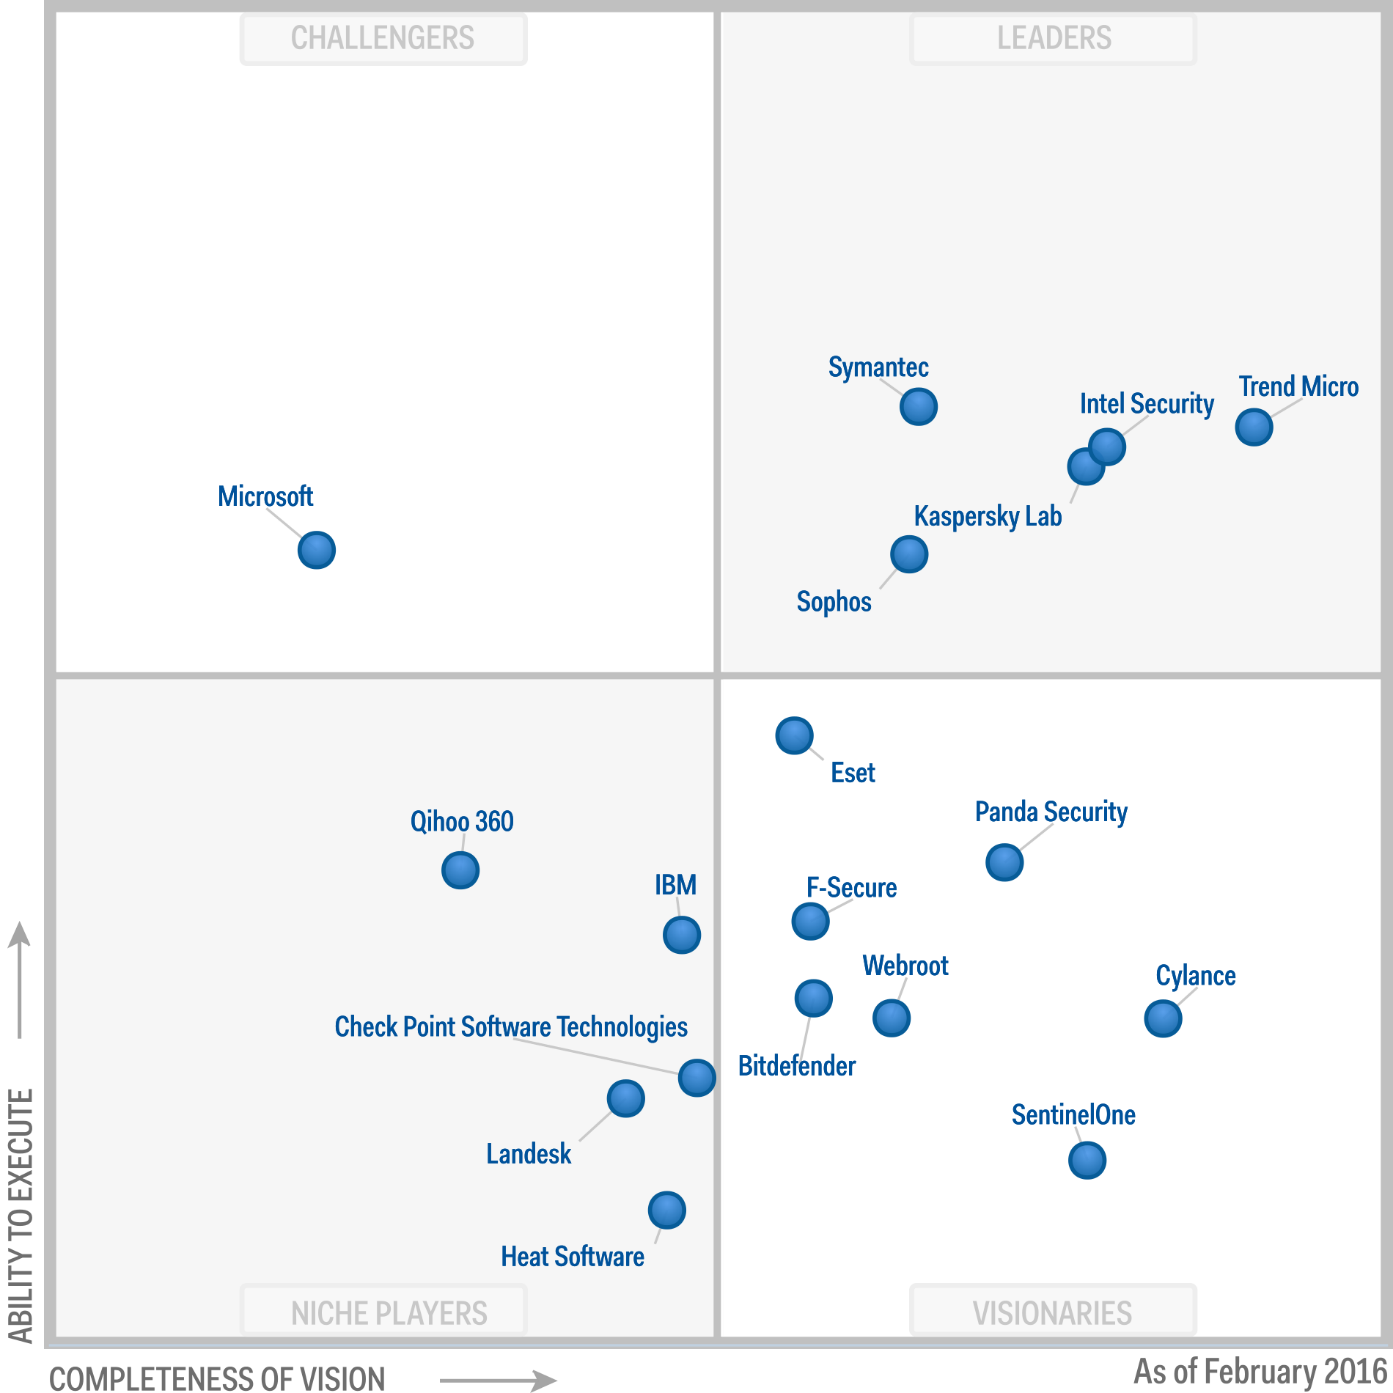 Magic Quadrant for Endpoint Protection Platforms 2016 (G00273851)